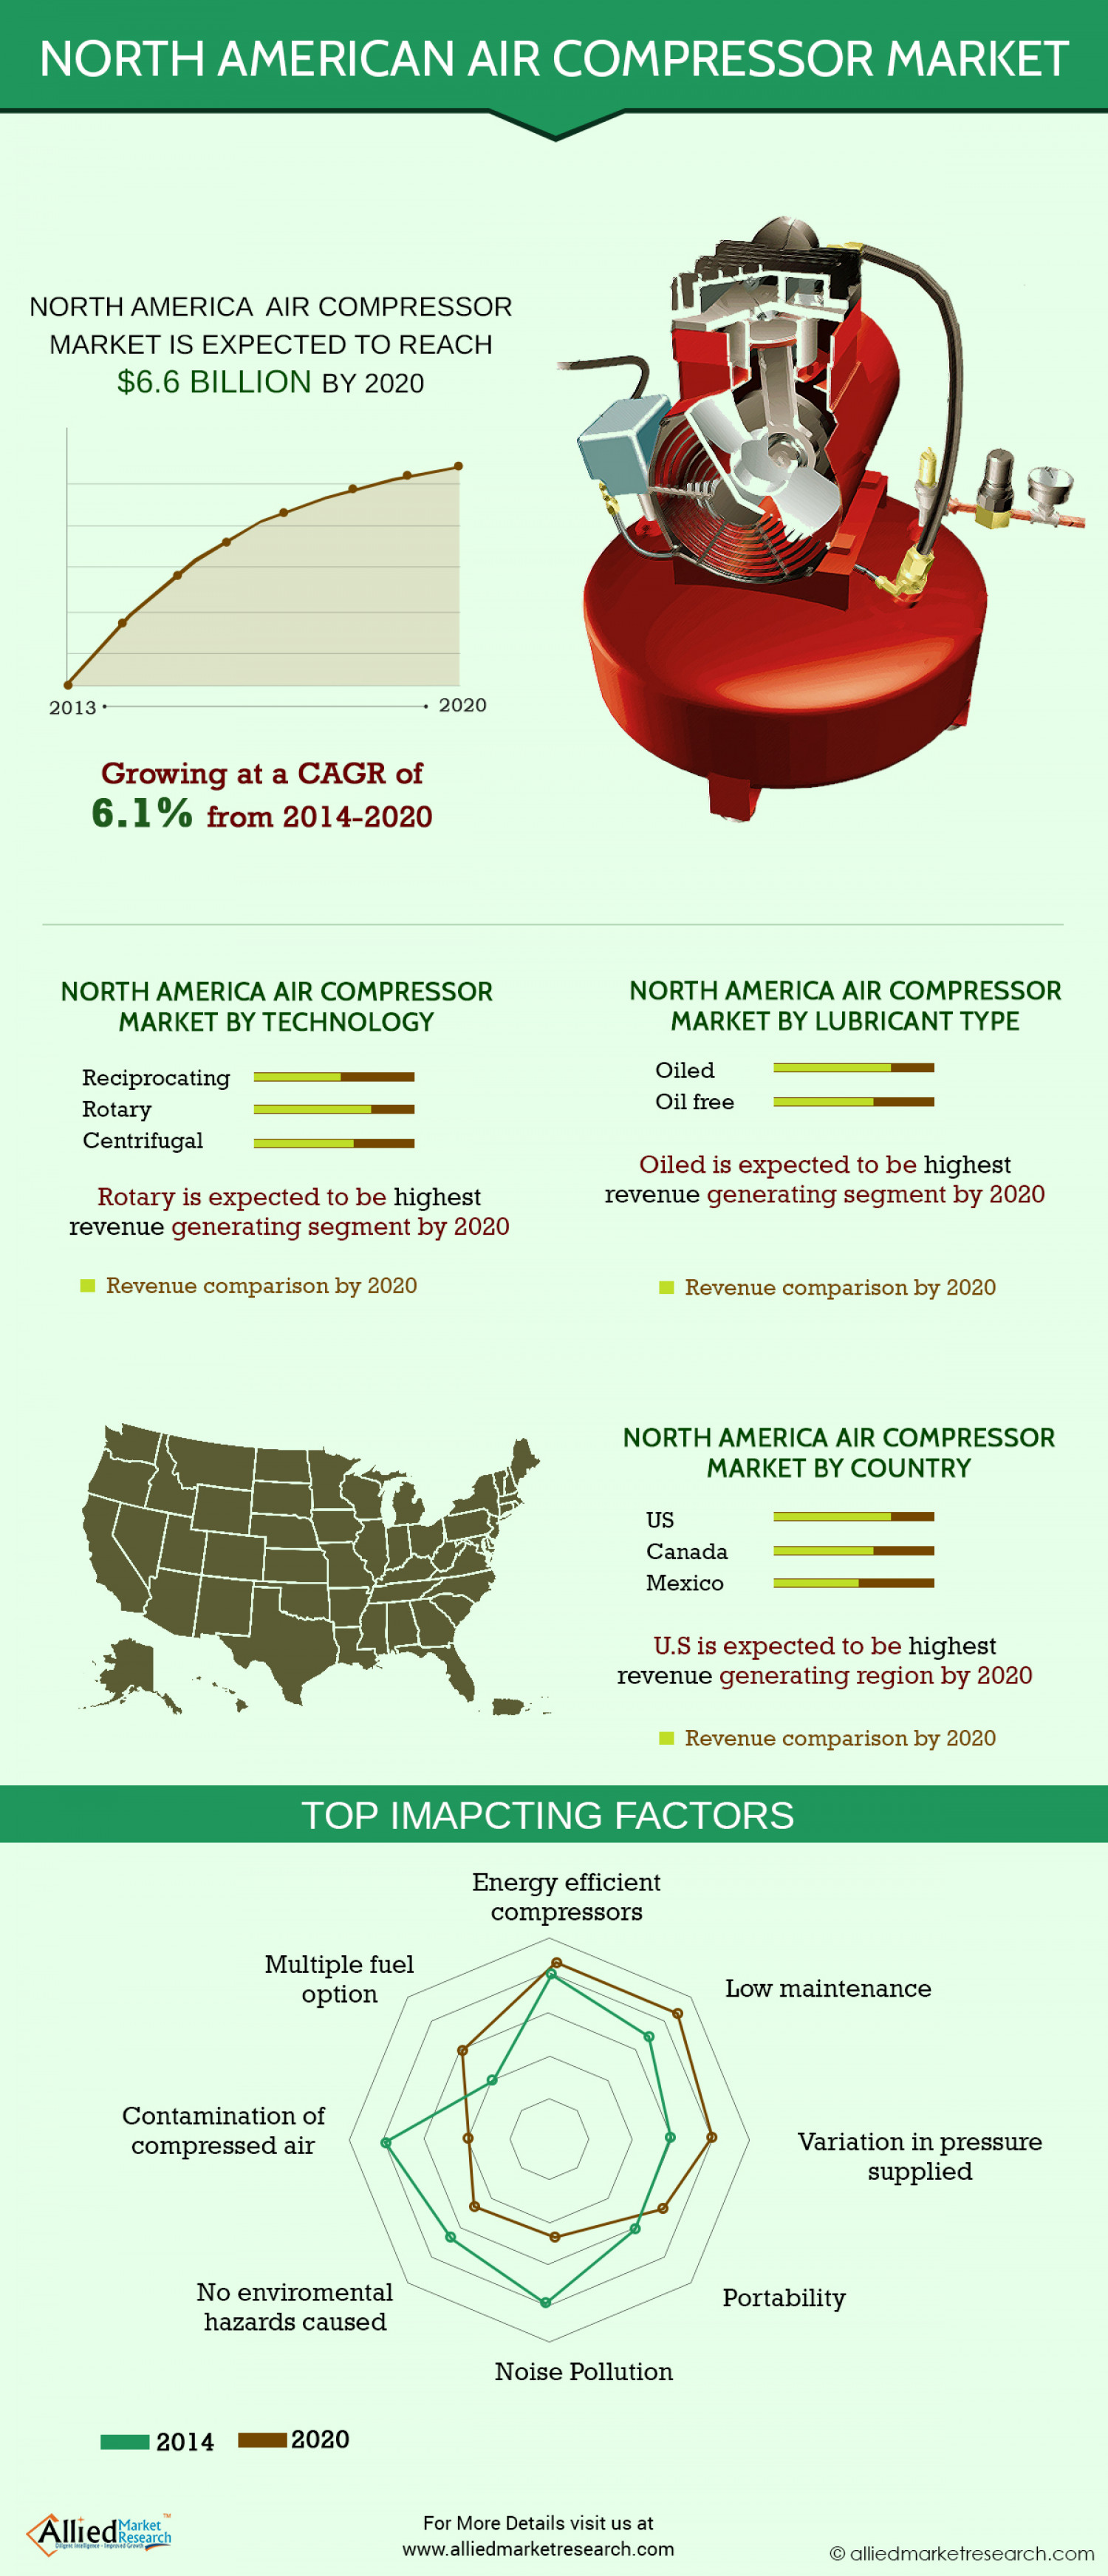 North American Air Compressor Market (Type, Product Design, Lubrication Method, and Countries) - Size, Share, Country-wise Trends, Company Profiles, Demand, Insights, Analysis, Research, Report, Opportunities, Segmentation, and Forecast 2013 -2020 Infographic